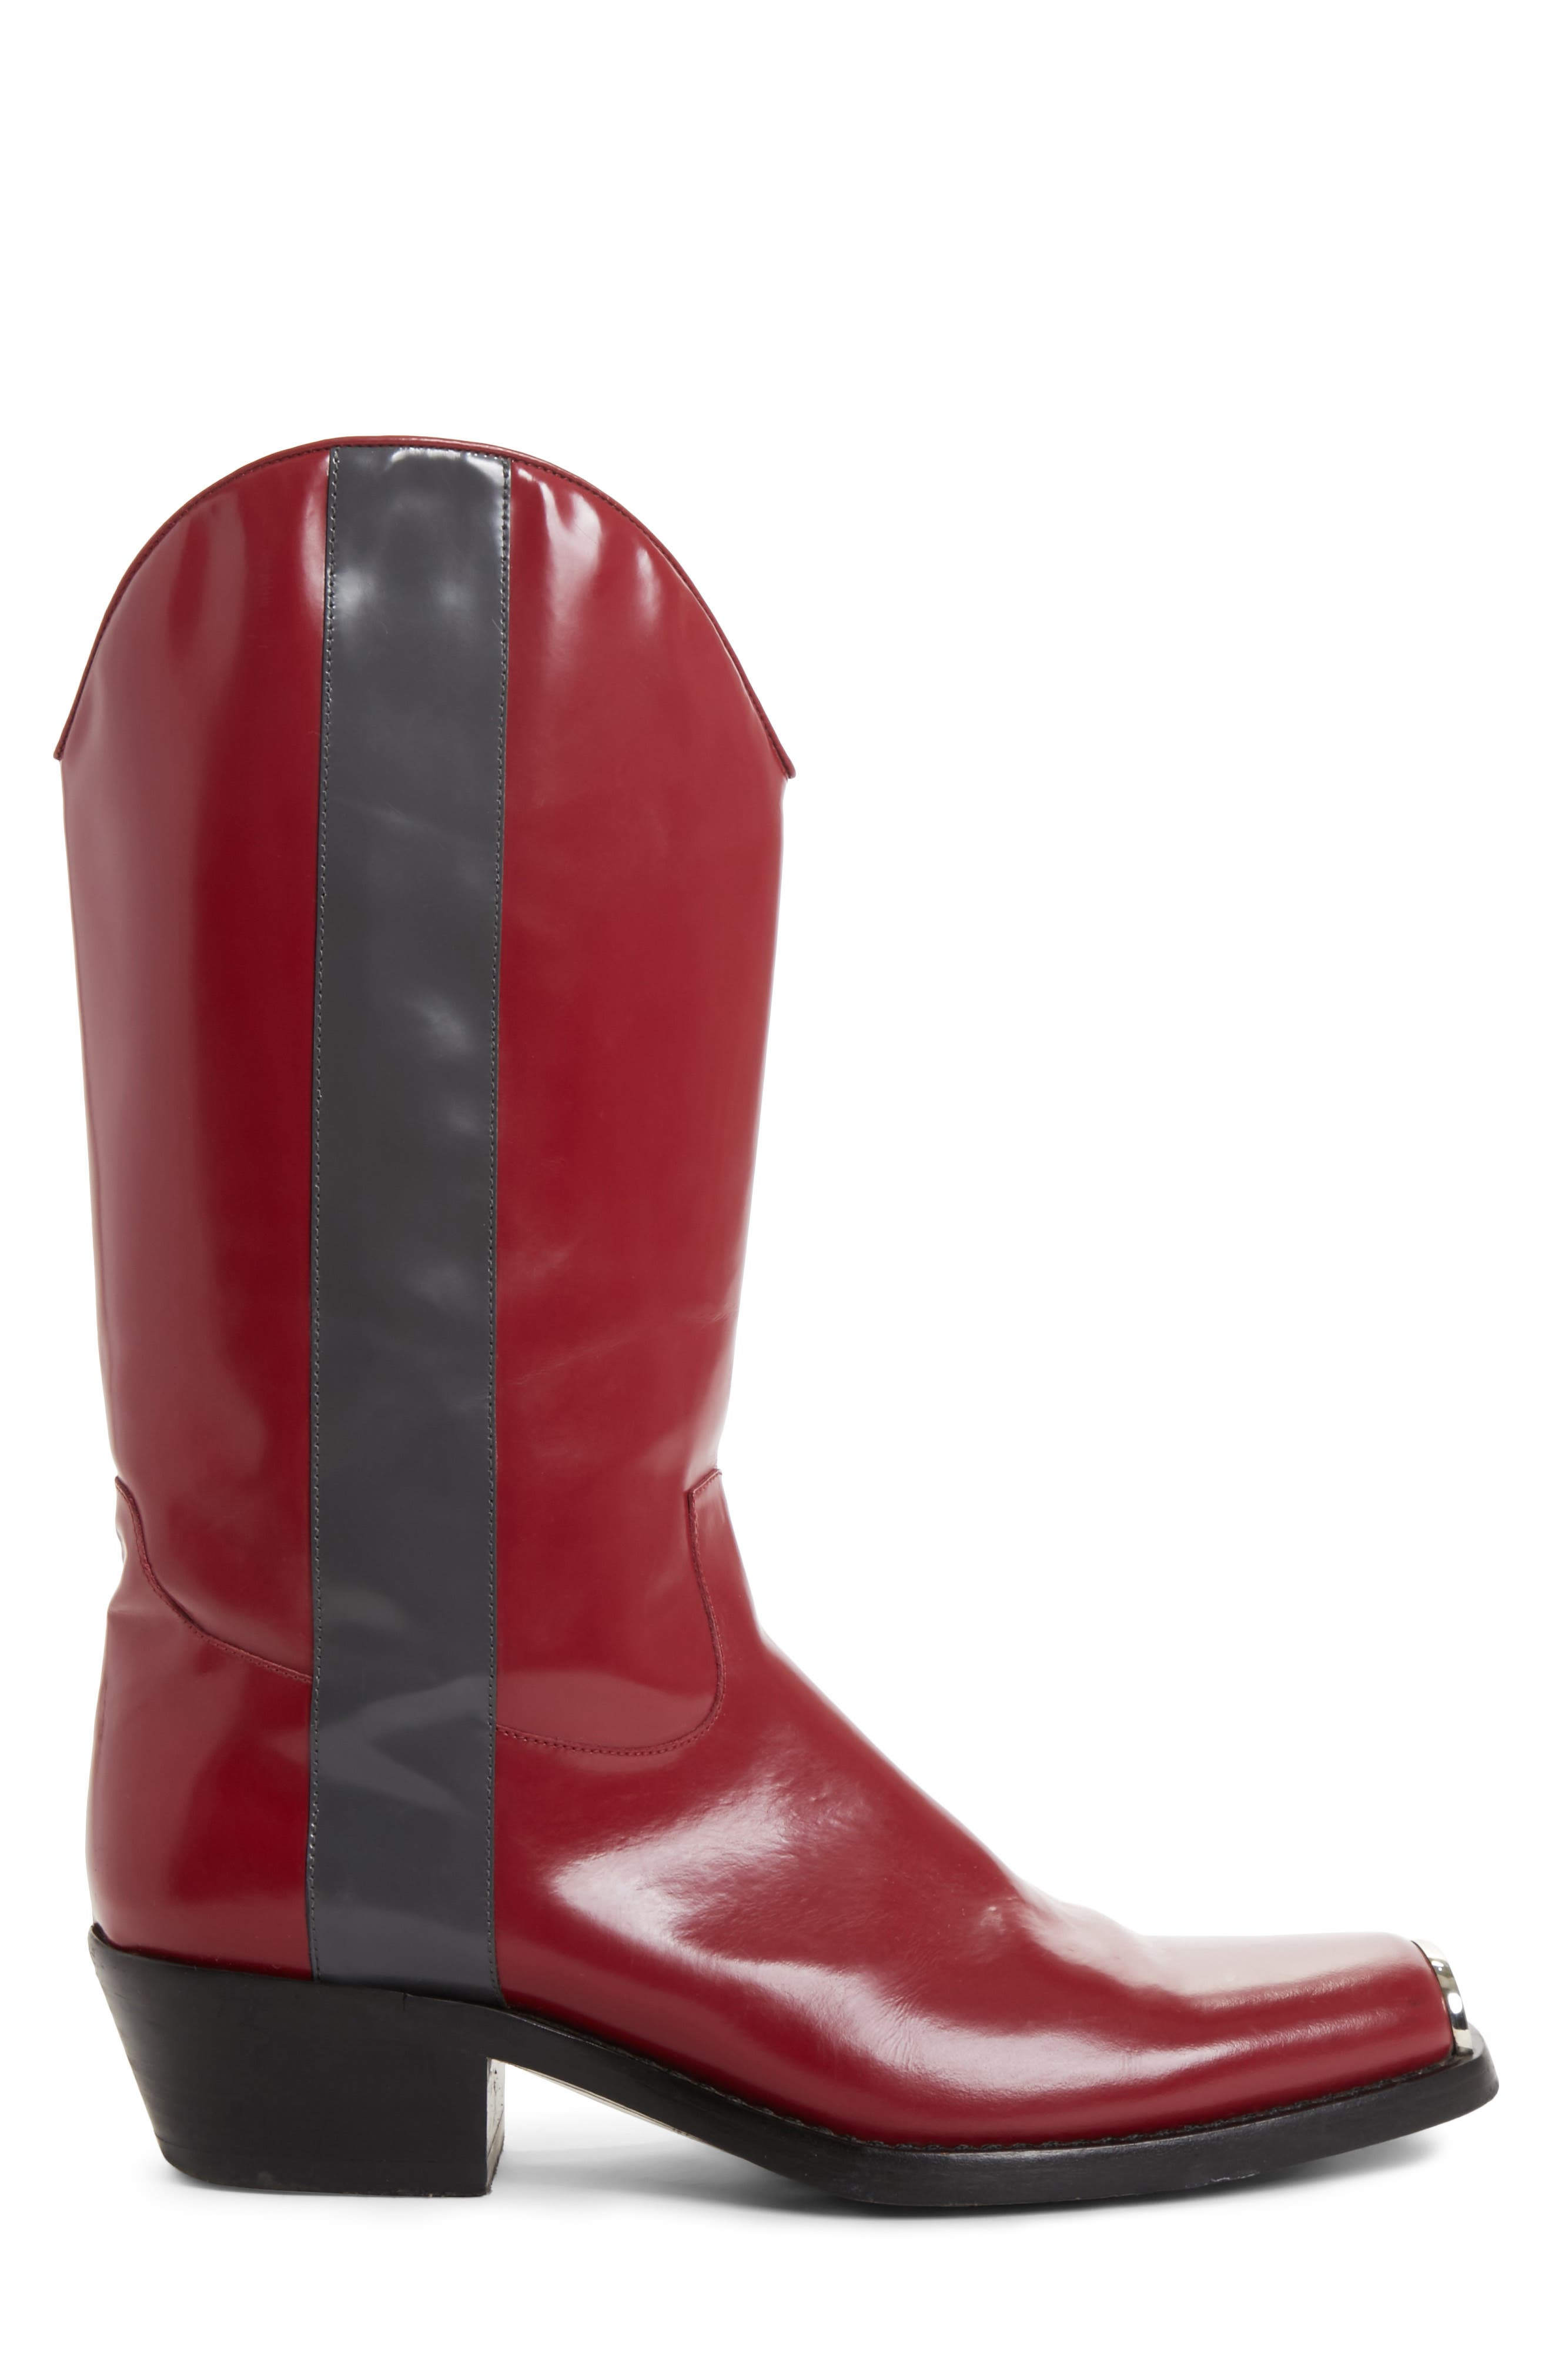 Chris Western Metal Tip Boot,                             Alternate thumbnail 3, color,                             Dark Red/ Anthracite Leather